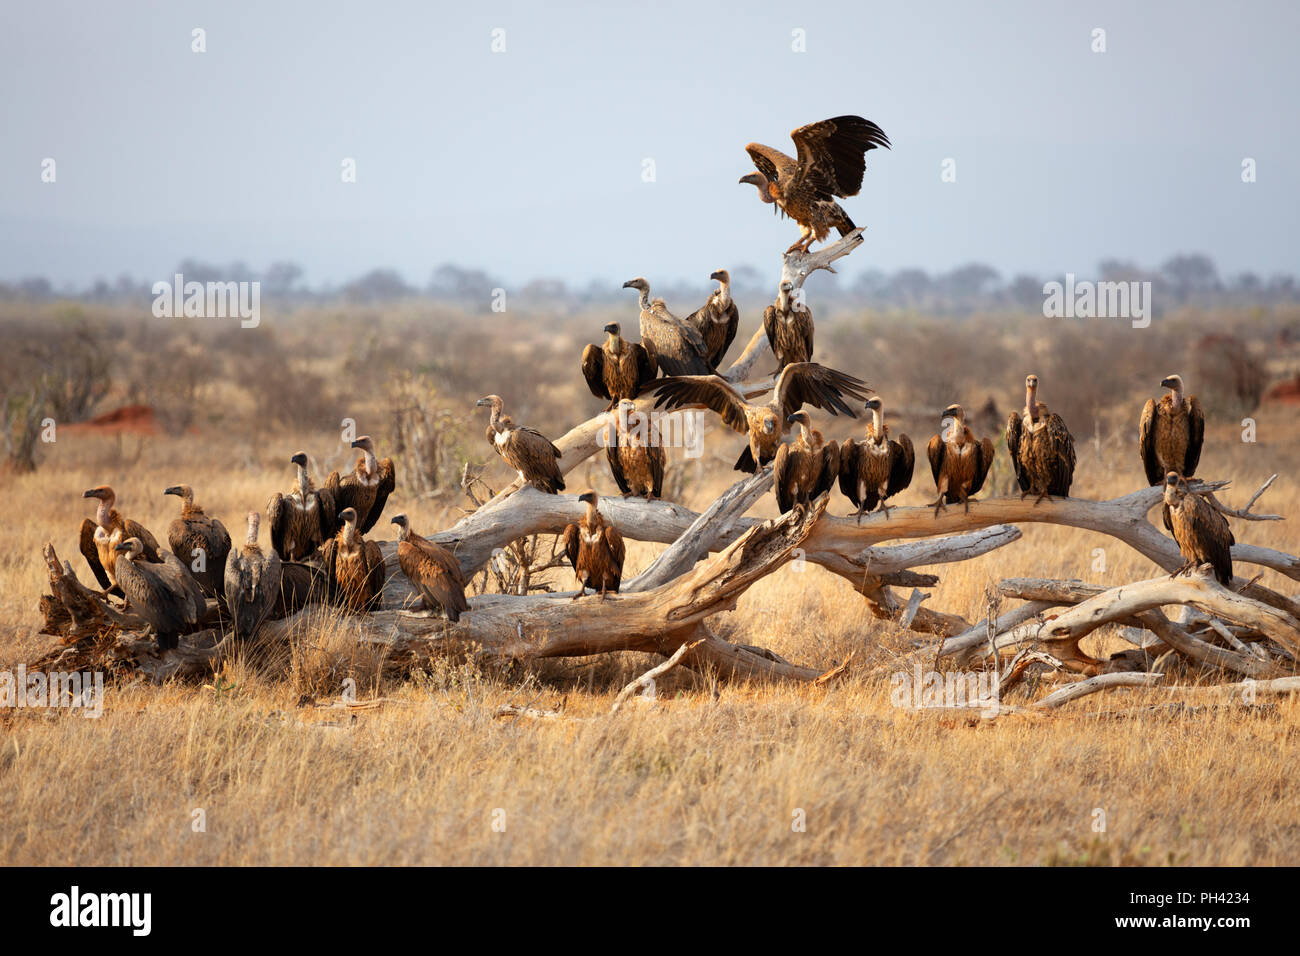 TSAVO EAST NATIONAL PARK, KENYA, AFRICA - A committee or flock of vultures perched on a dead tree branch in late afternoon sun - Stock Image